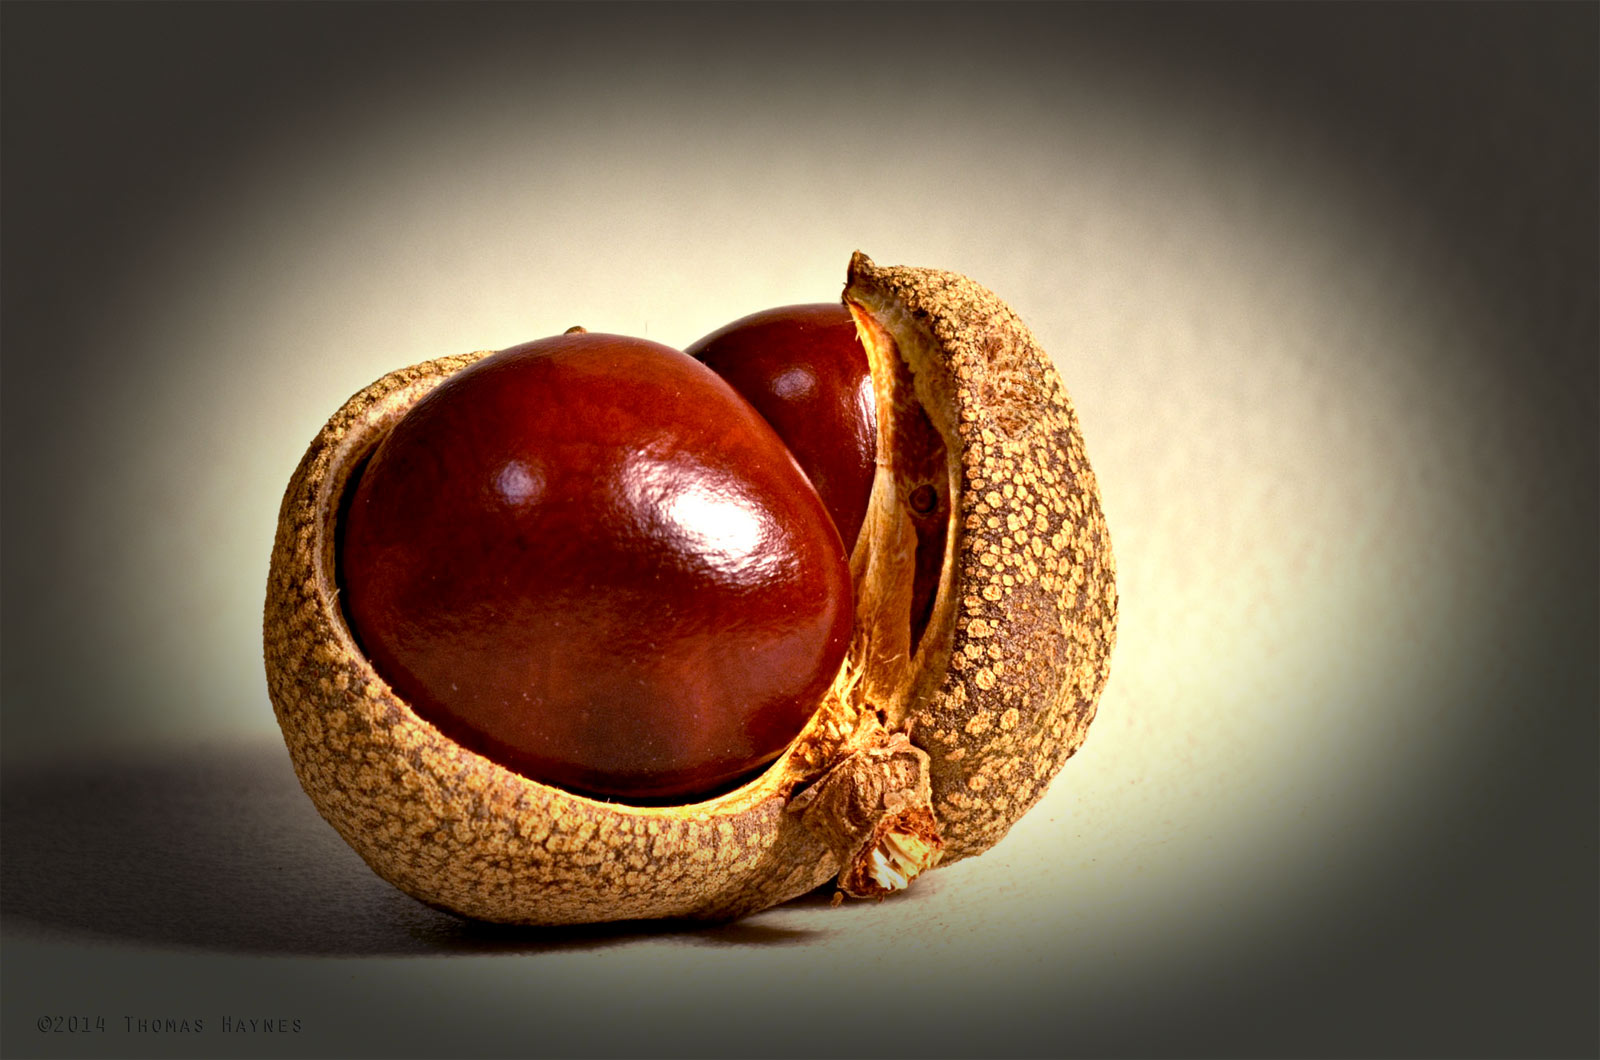 Buckeye seed and pod, Thomas Haynes Photoshoot